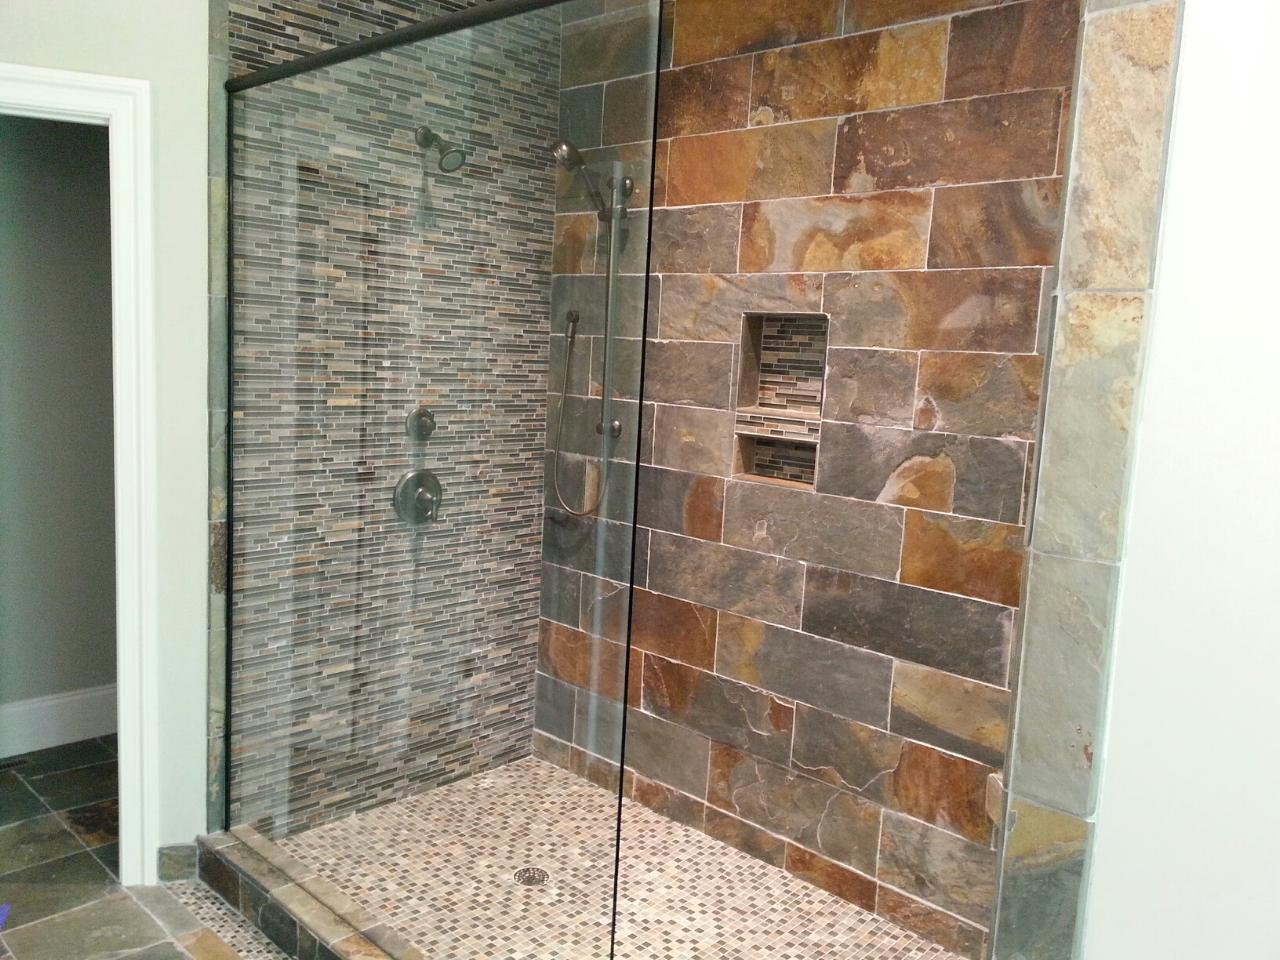 bathroom-gorgeous-bathroom-design-idea-with-shower-stall-designed-with-grey-mosaic-and-grey-brown-stone-tile-wall-design-plus-mosaic-shower-pan-combine-with-glass-door-and-natural-stone-tile-flooring